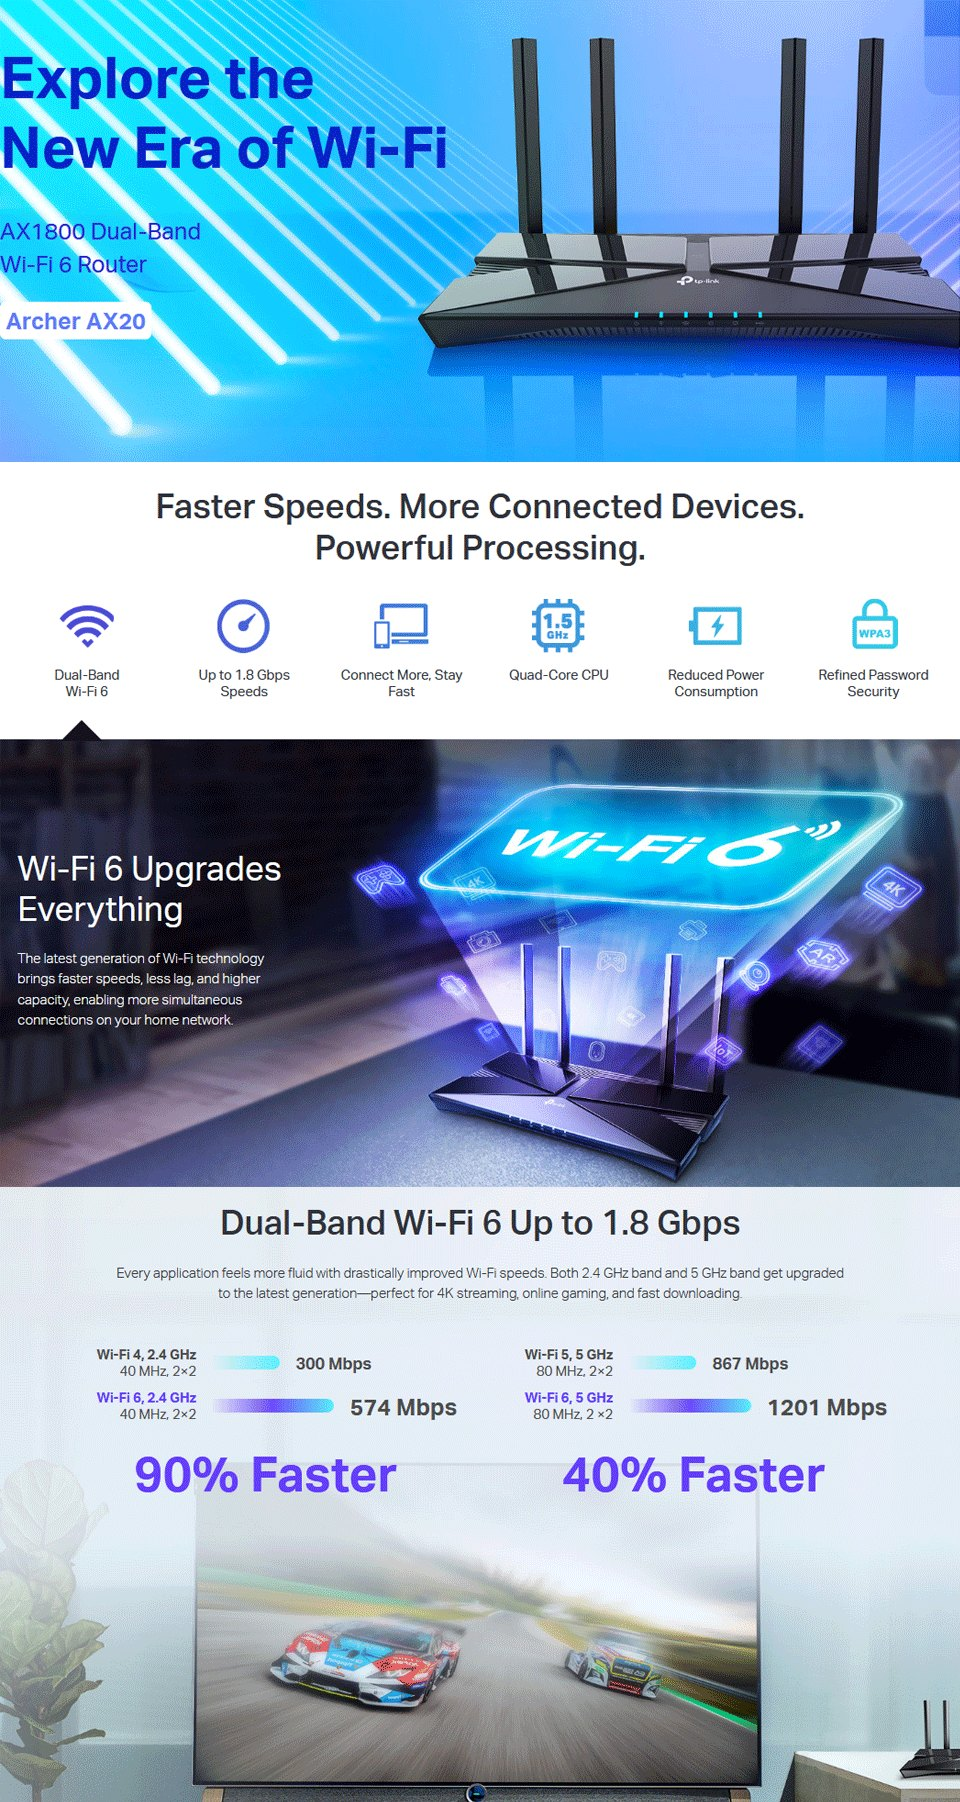 TP-Link Archer AX20 AX1800 Dual Band Wi-Fi 6 Router features